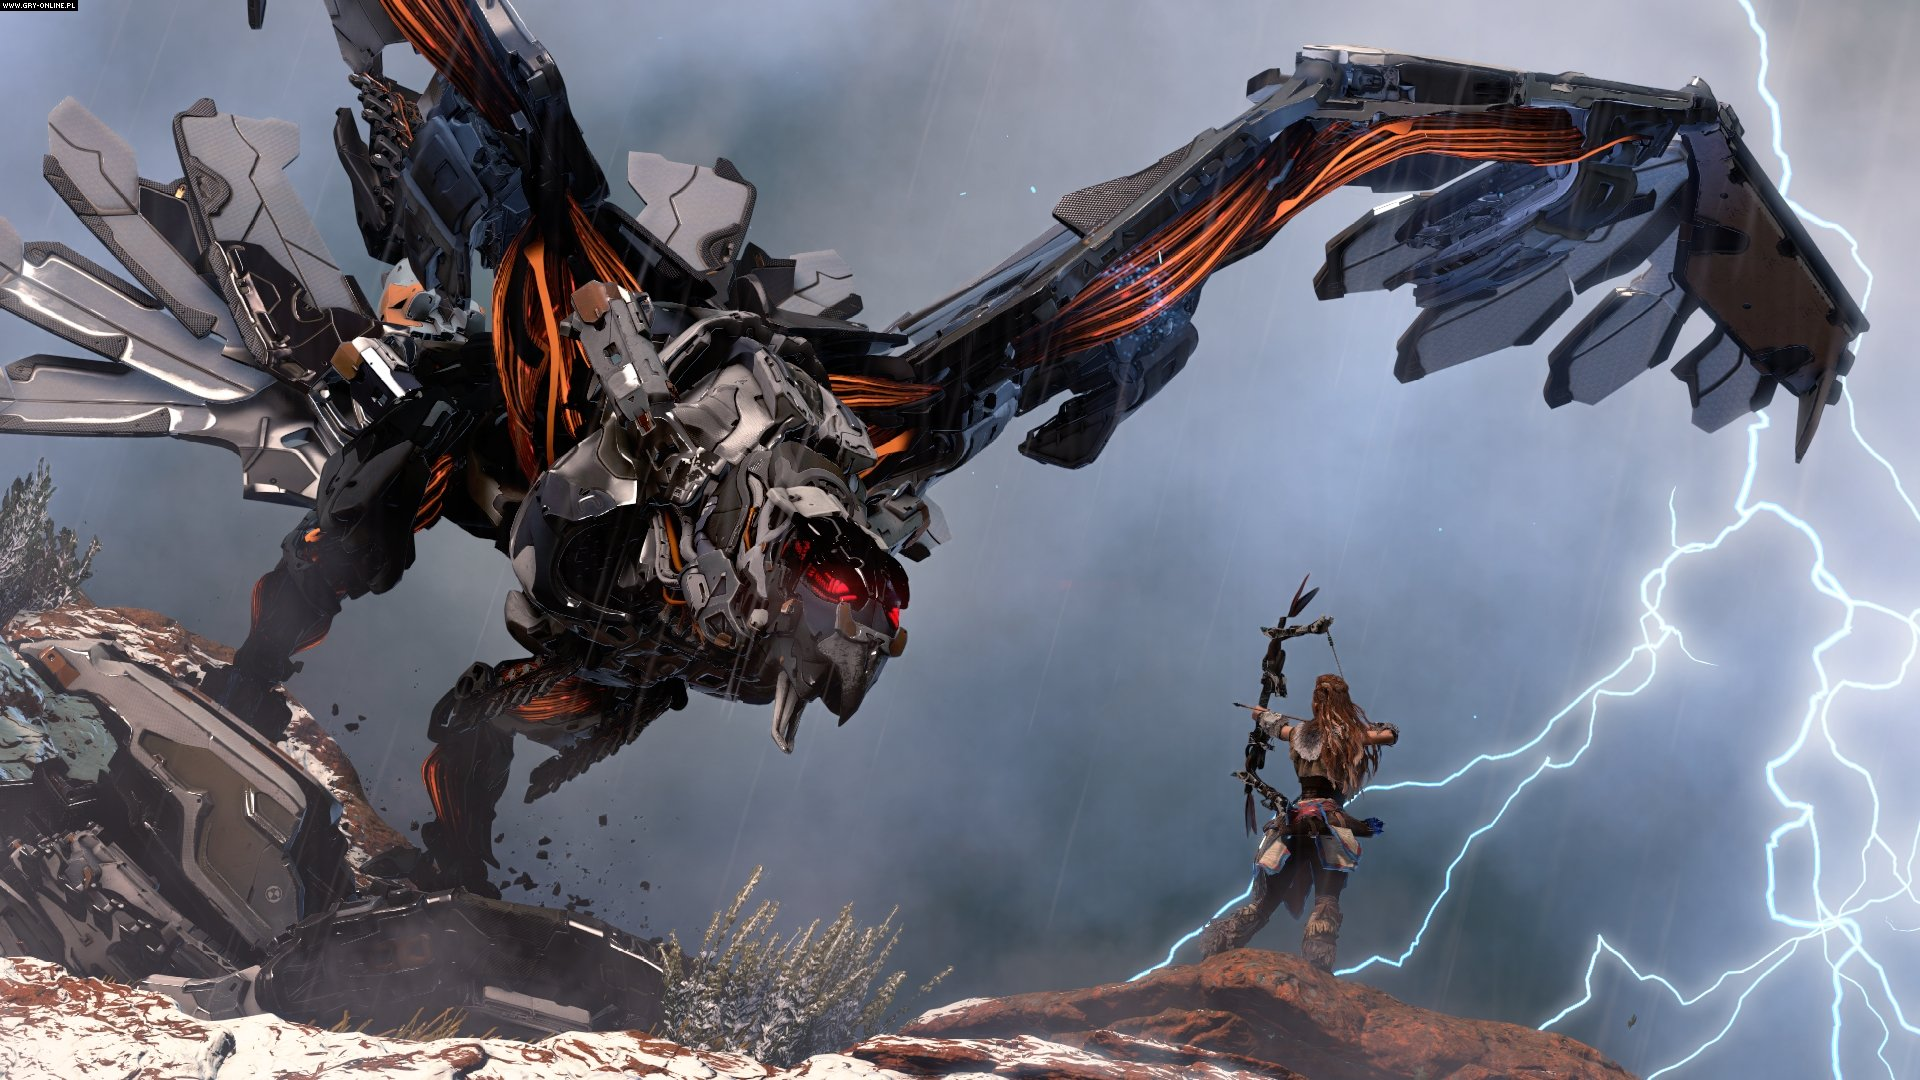 Horizon Zero Dawn PS4 Games Image 49/54, Guerrilla Games, Sony Interactive Entertainment